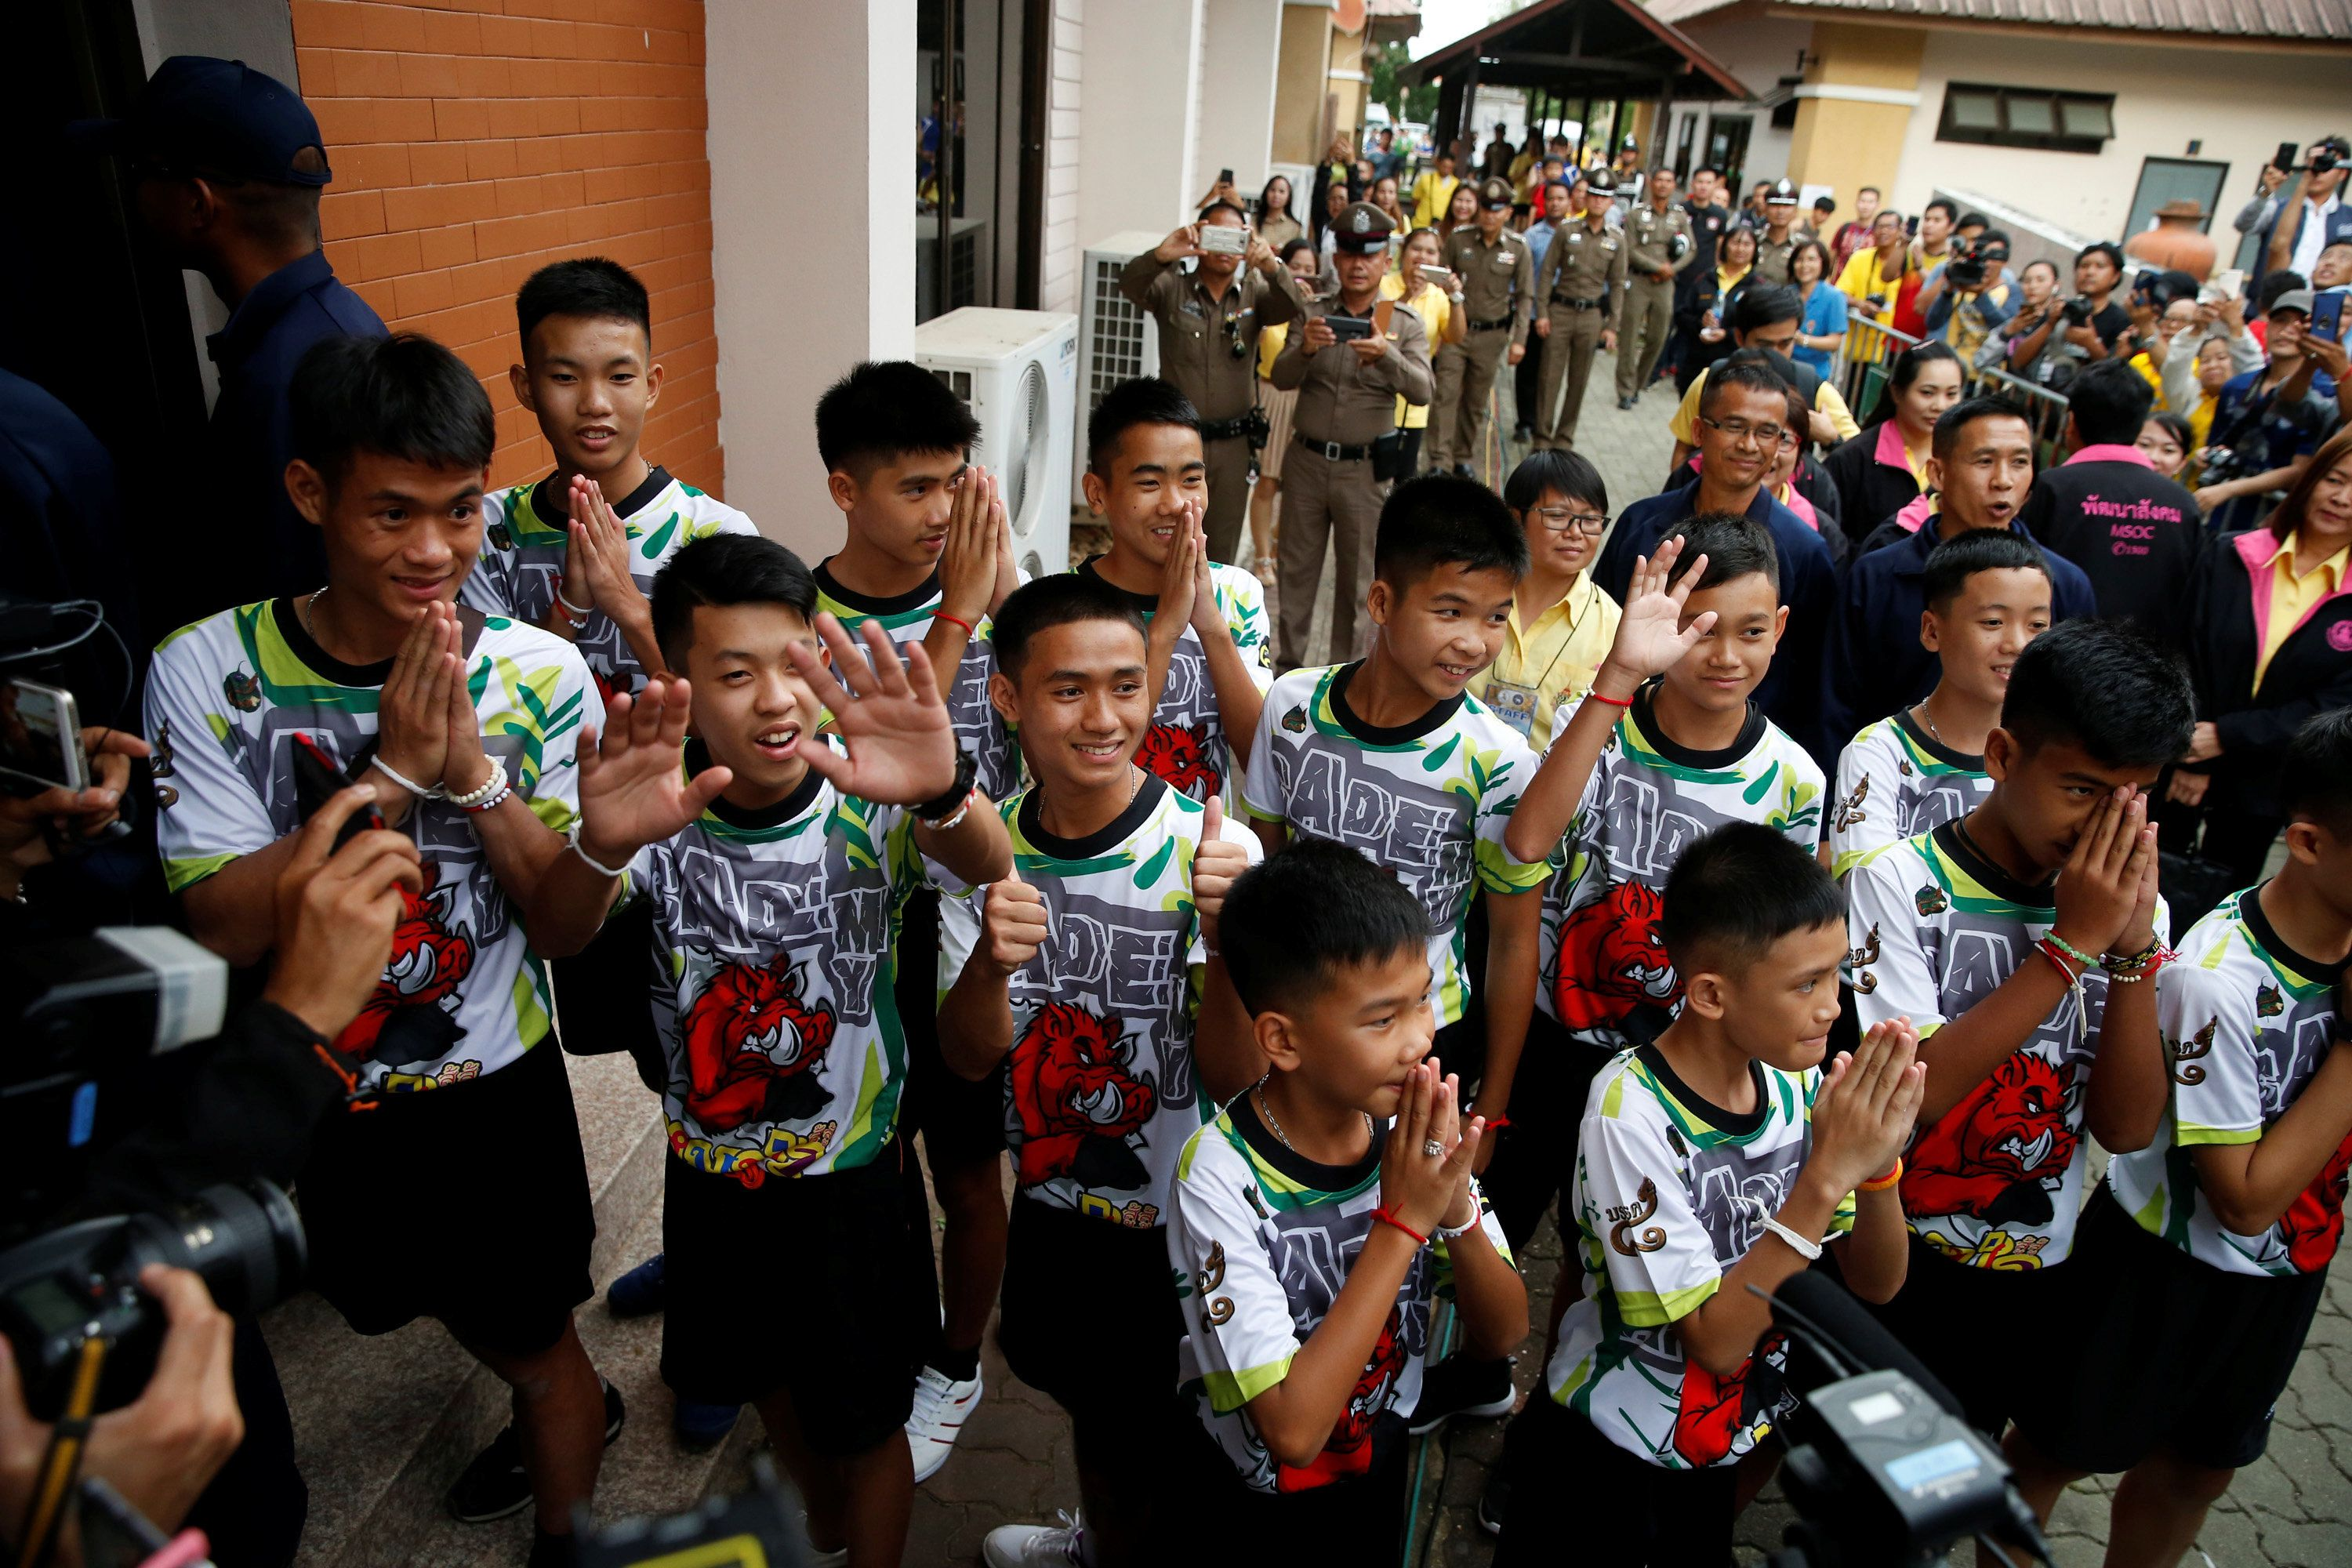 The 12 Thai Cave Rescue Boys And Their Coach Make First Public Appearance After Leaving